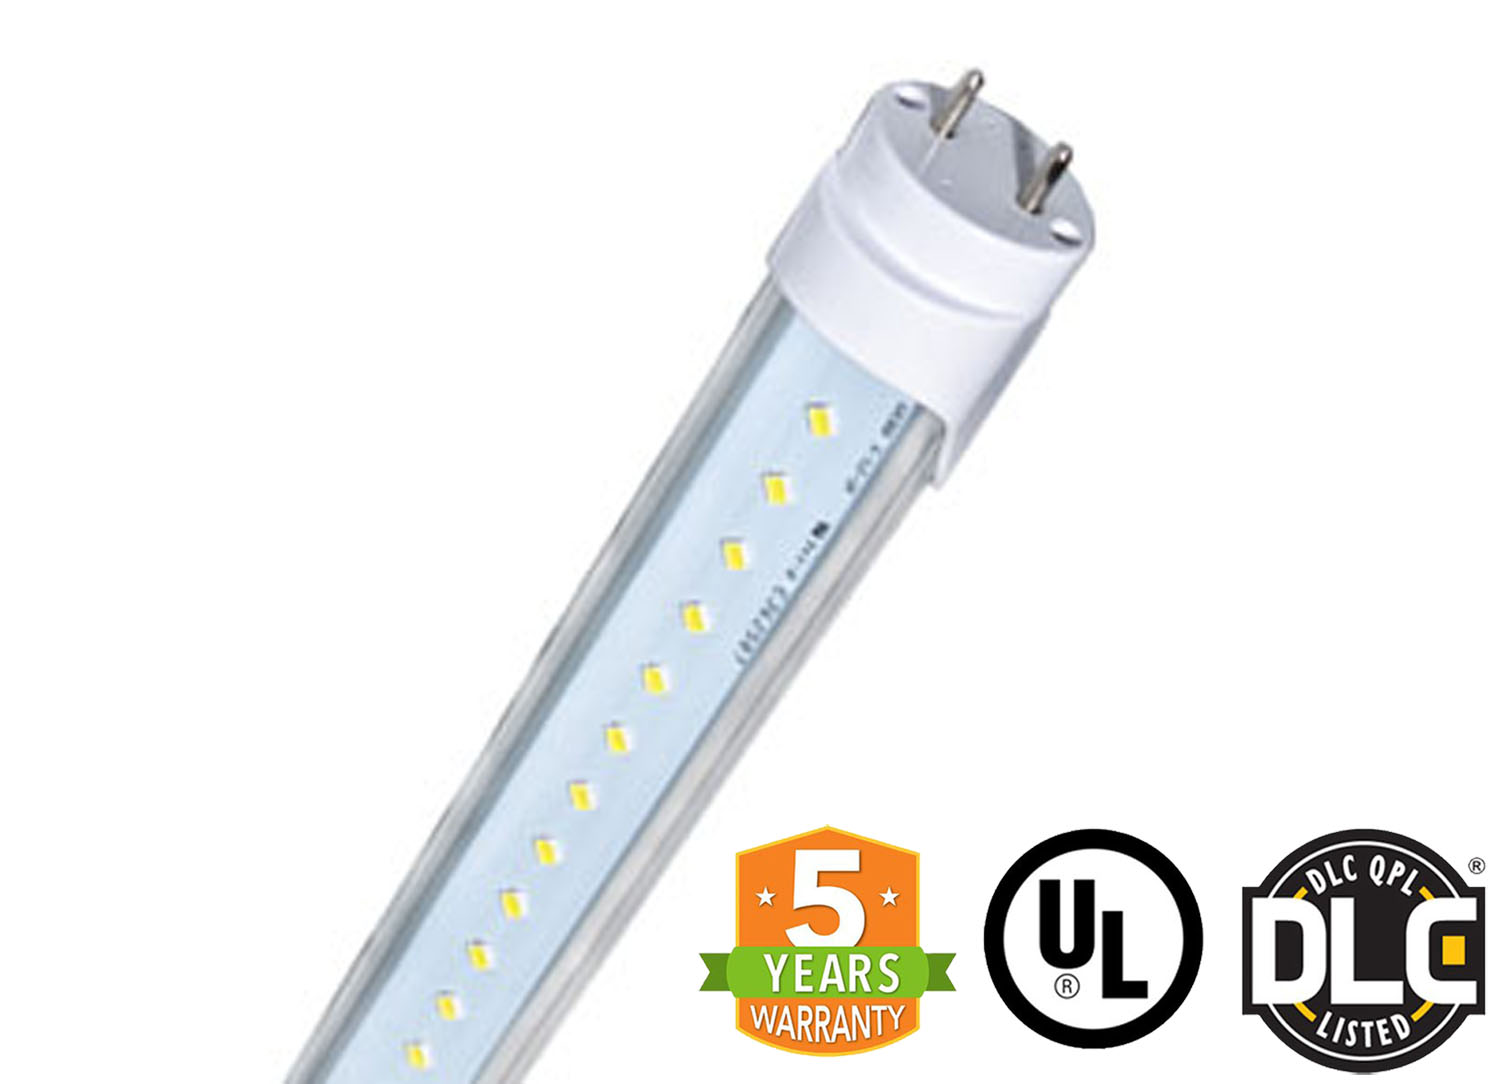 LED T8 18w Tube $7.20 - 20w & 22w also available